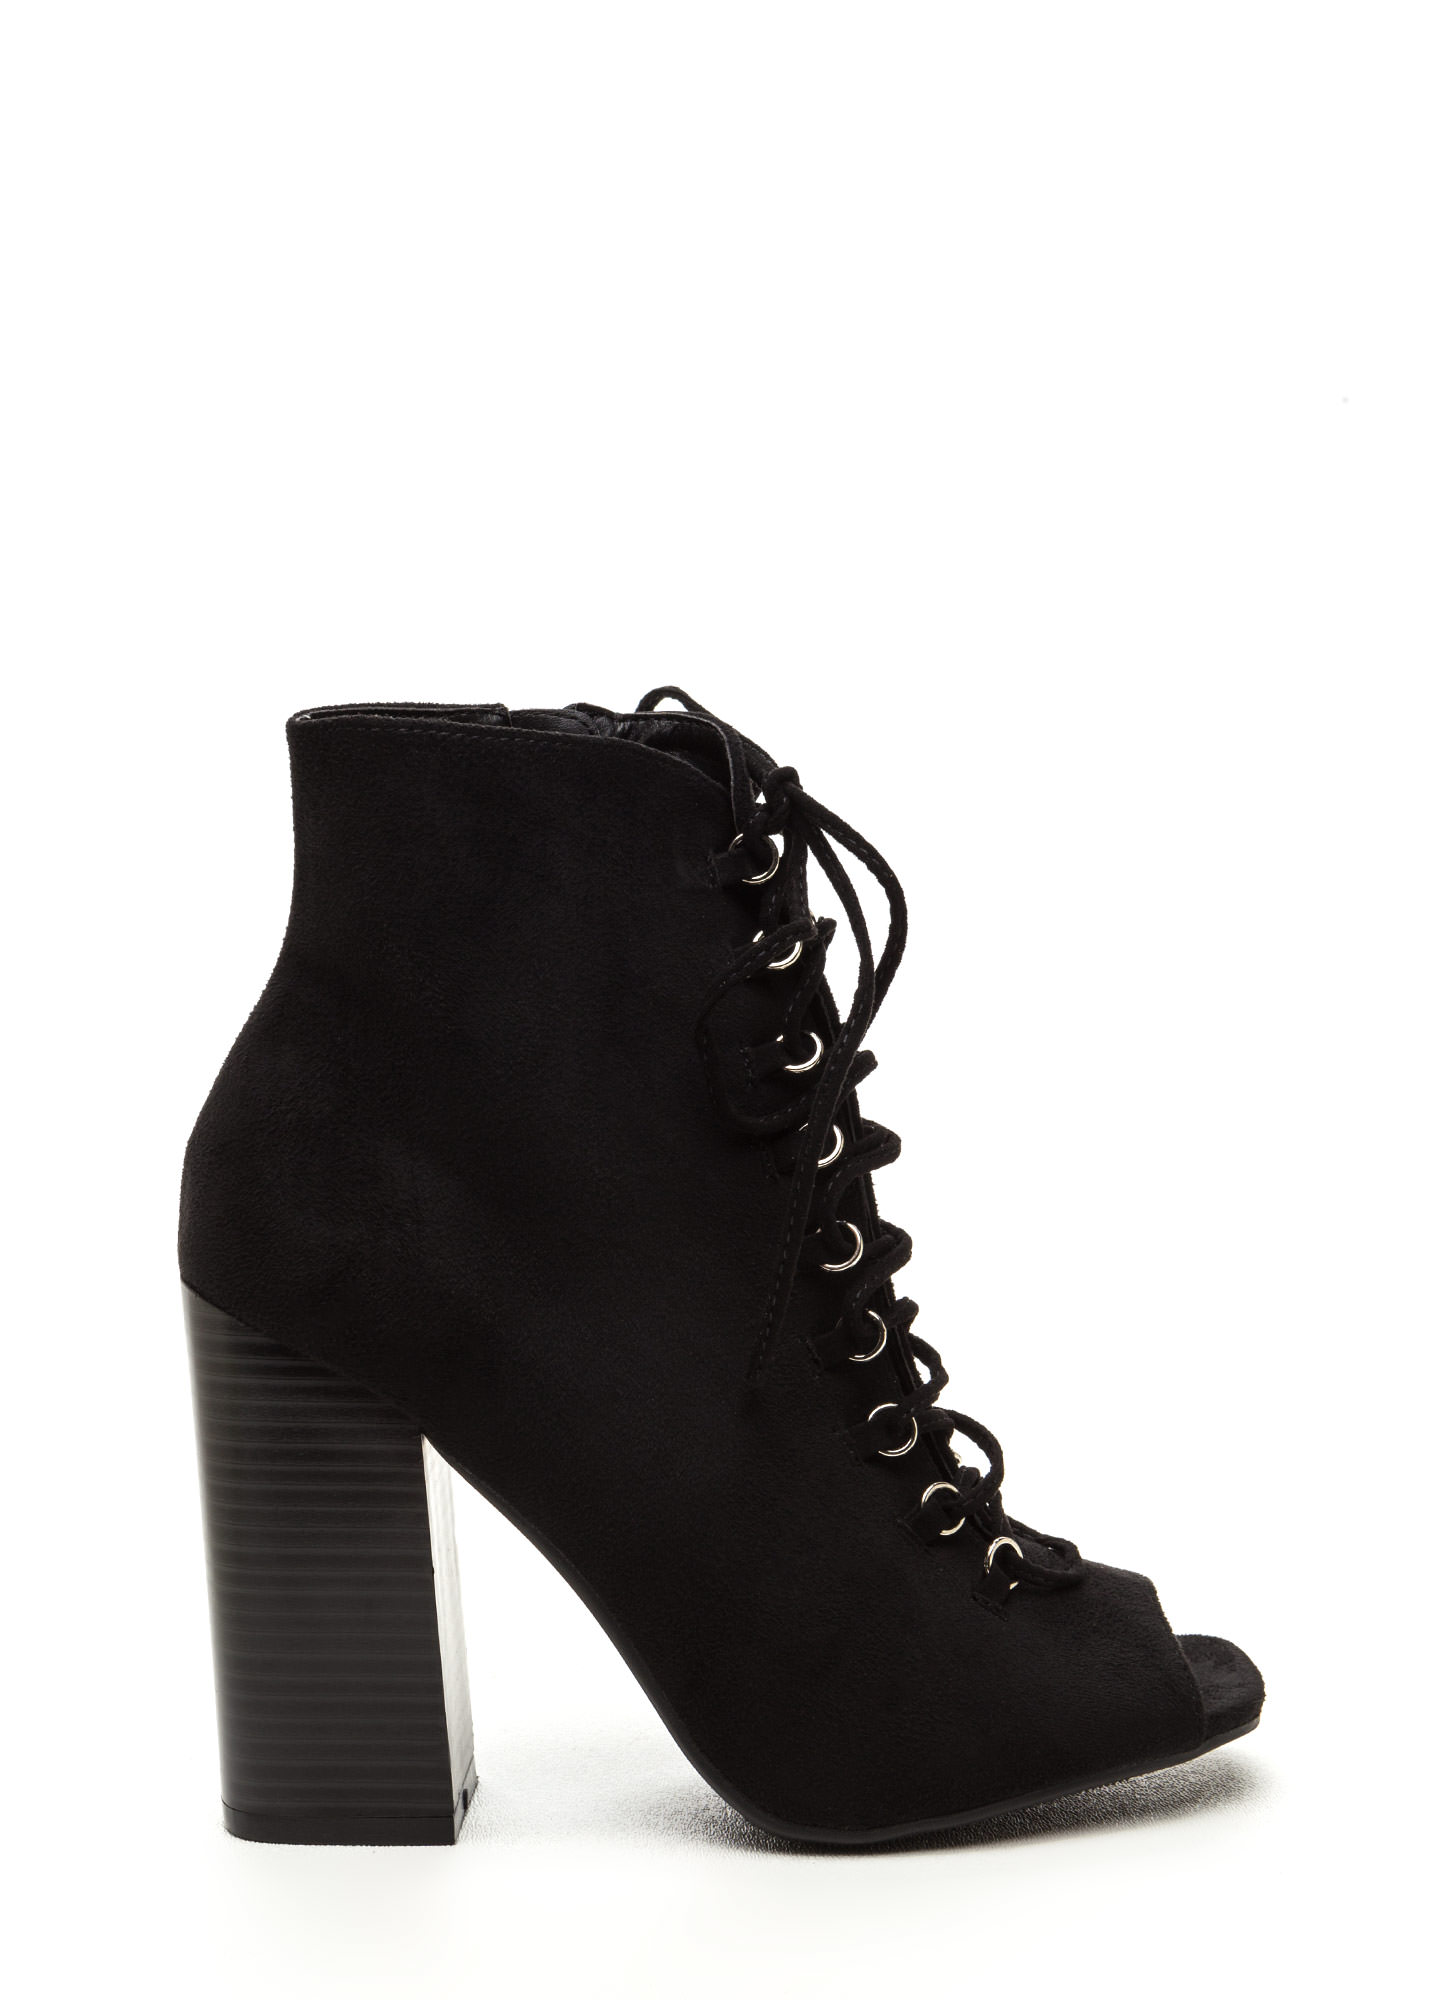 Change Of Pace Lace-Up Peep-Toe Booties BLACK